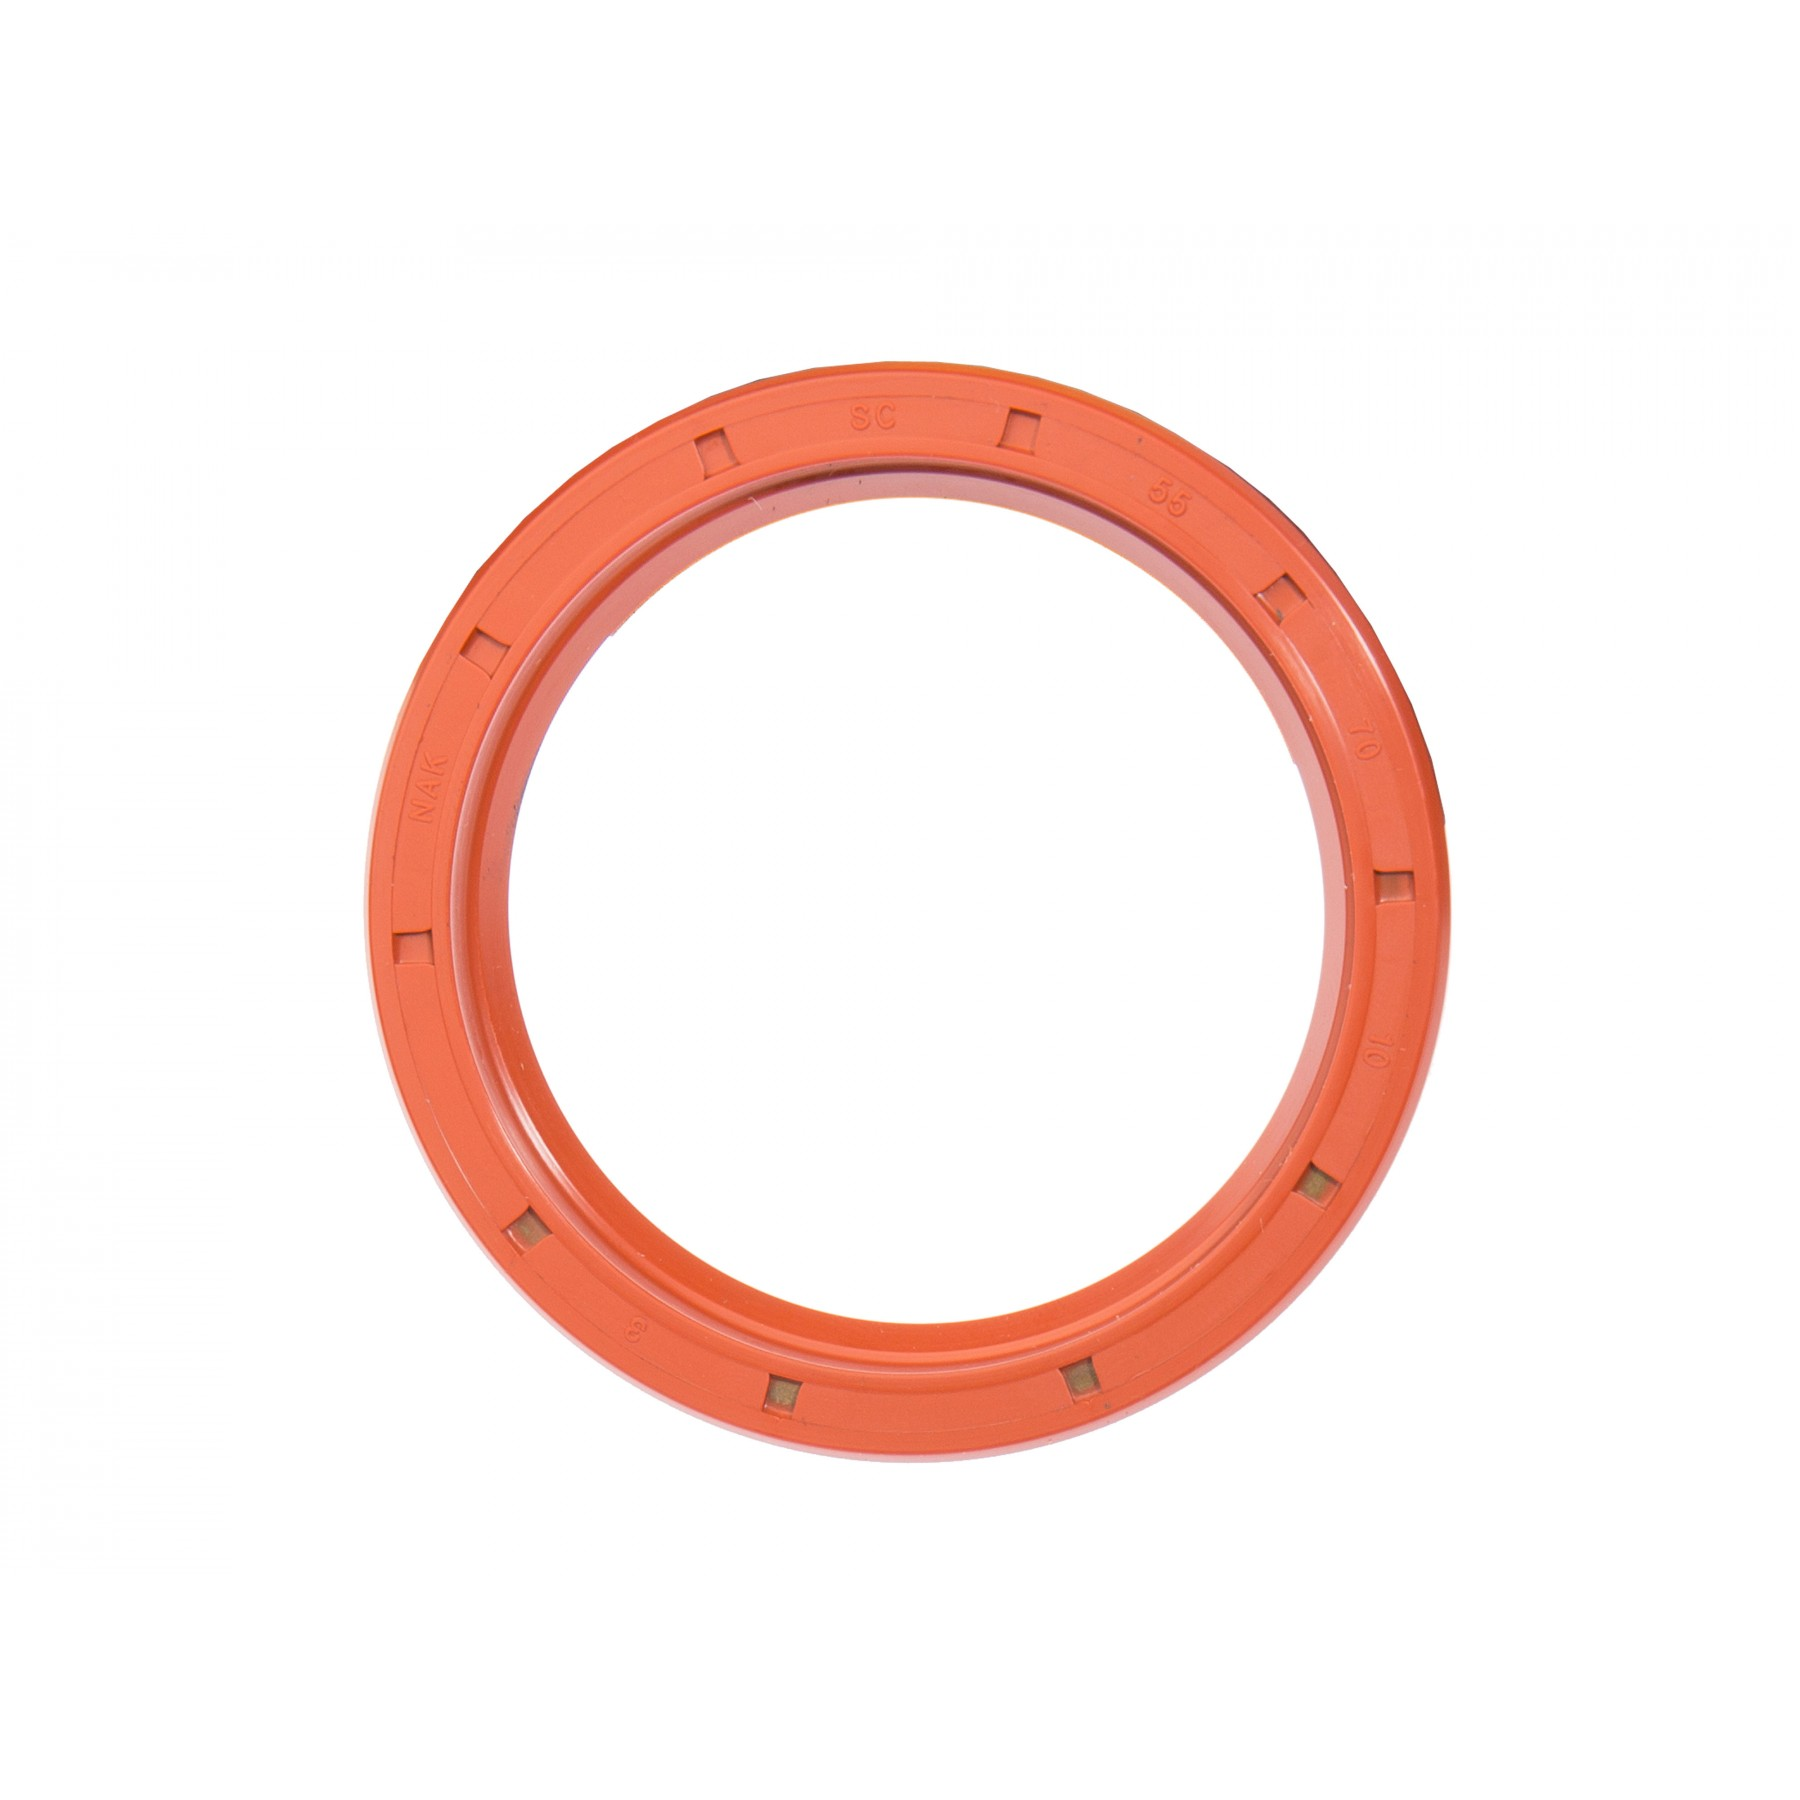 PRIMARY GEAR/CLUTCH OIL SEAL